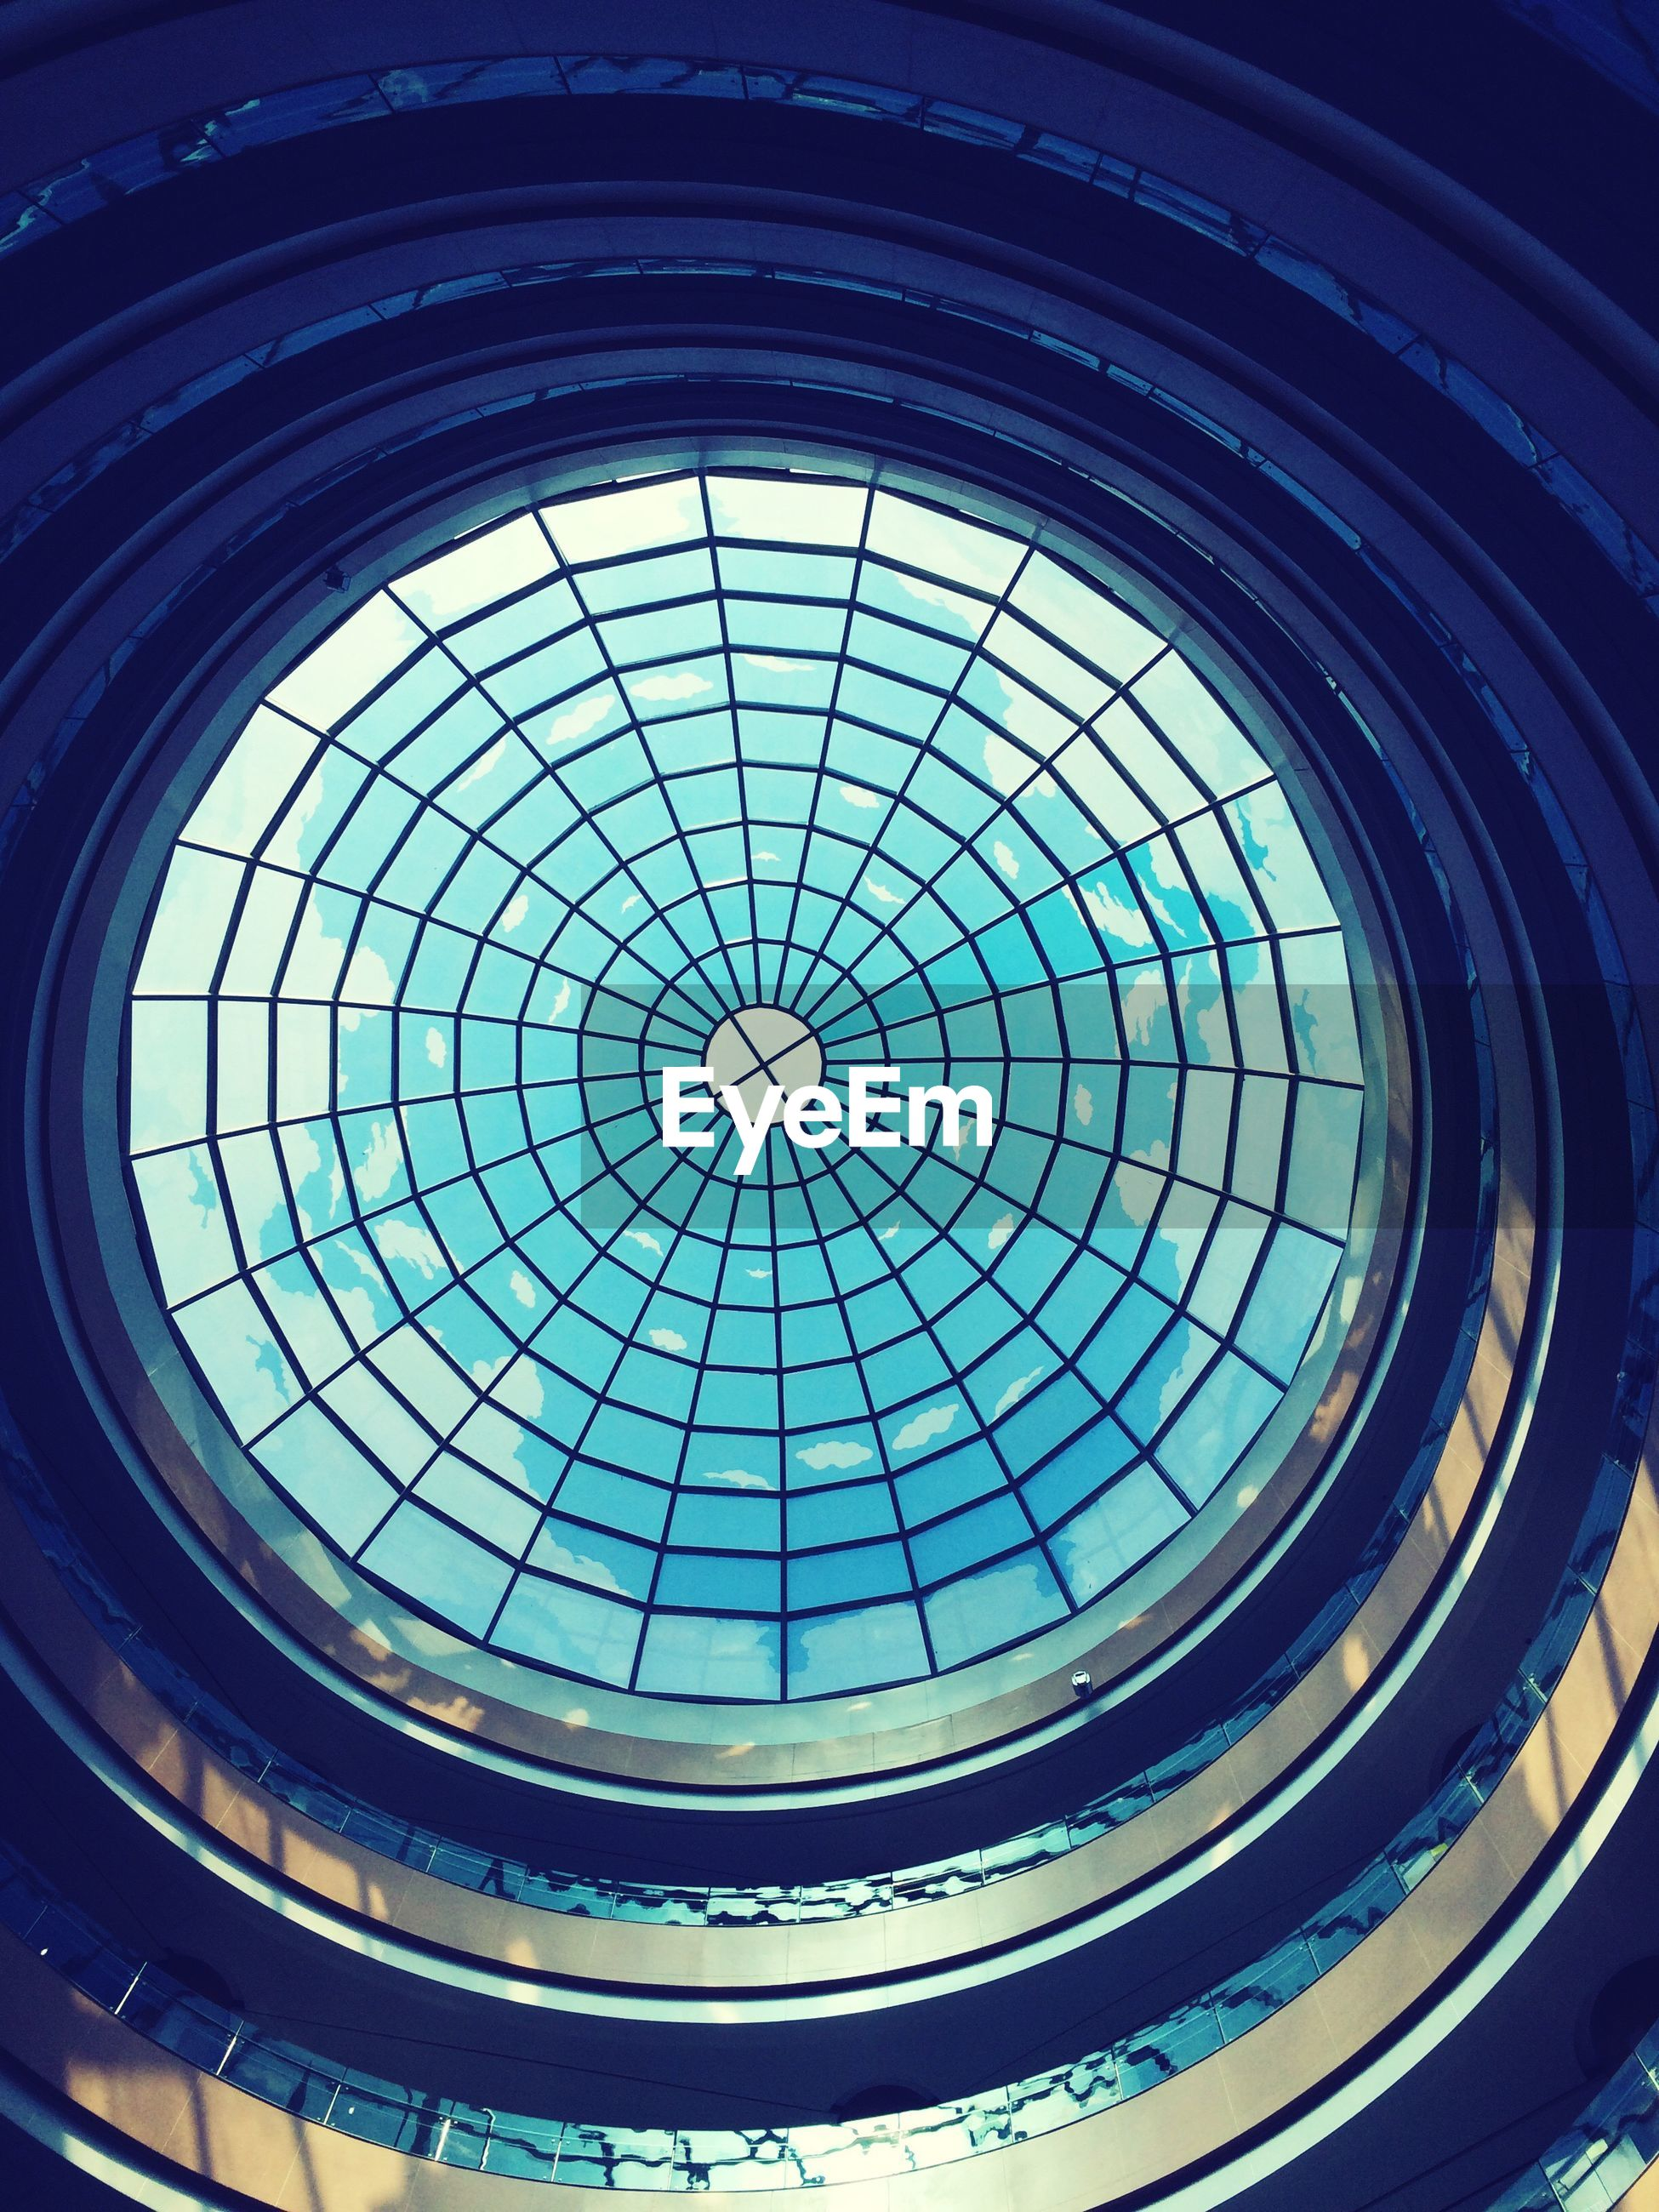 indoors, architecture, low angle view, built structure, pattern, ceiling, skylight, design, architectural feature, glass - material, directly below, geometric shape, window, dome, circle, full frame, backgrounds, repetition, no people, modern